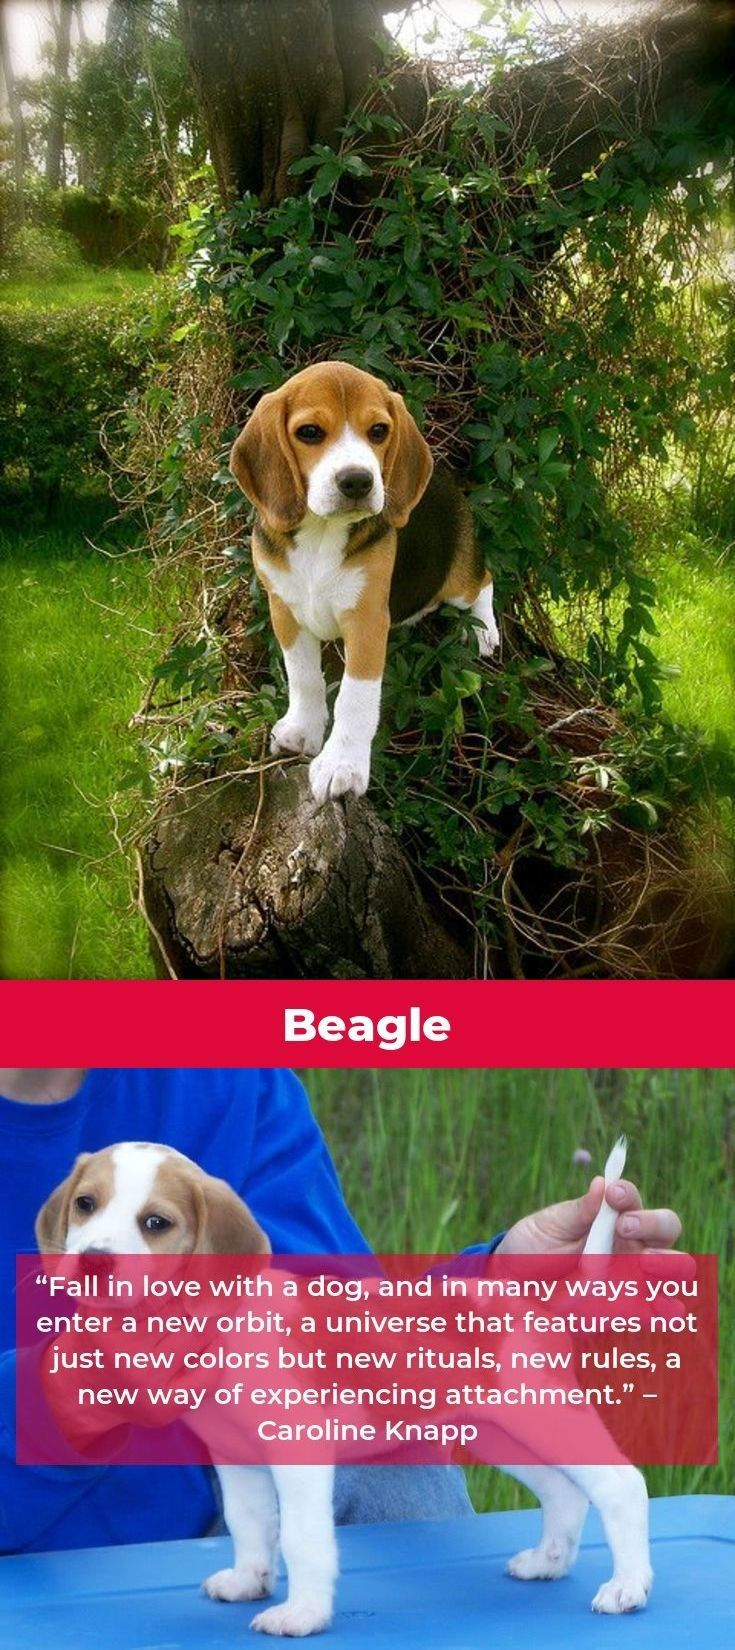 Beagle Puppies Beaglegram Beagles Dog Beagle Beagle Puppy